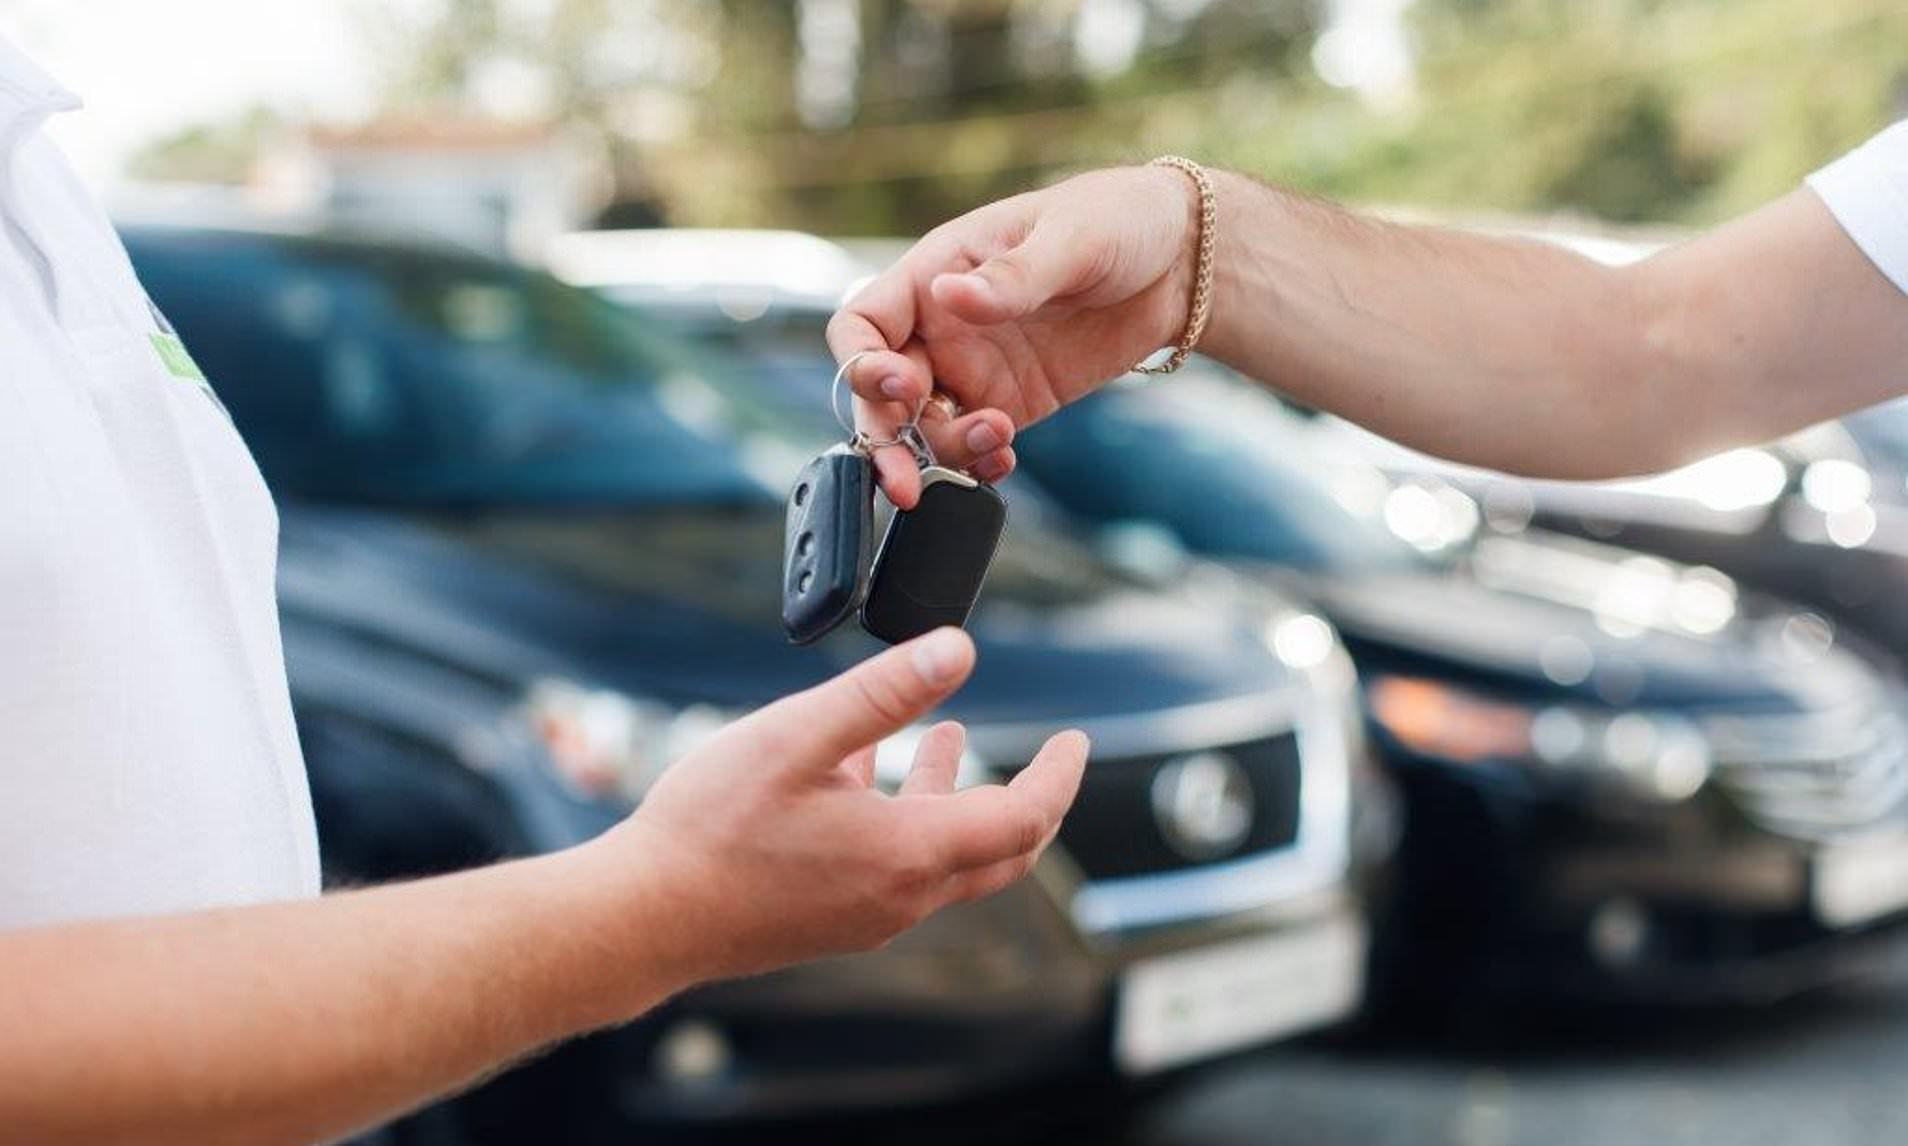 Car Rental Scams Drivers Should Avoid - coachoutlet-store.org